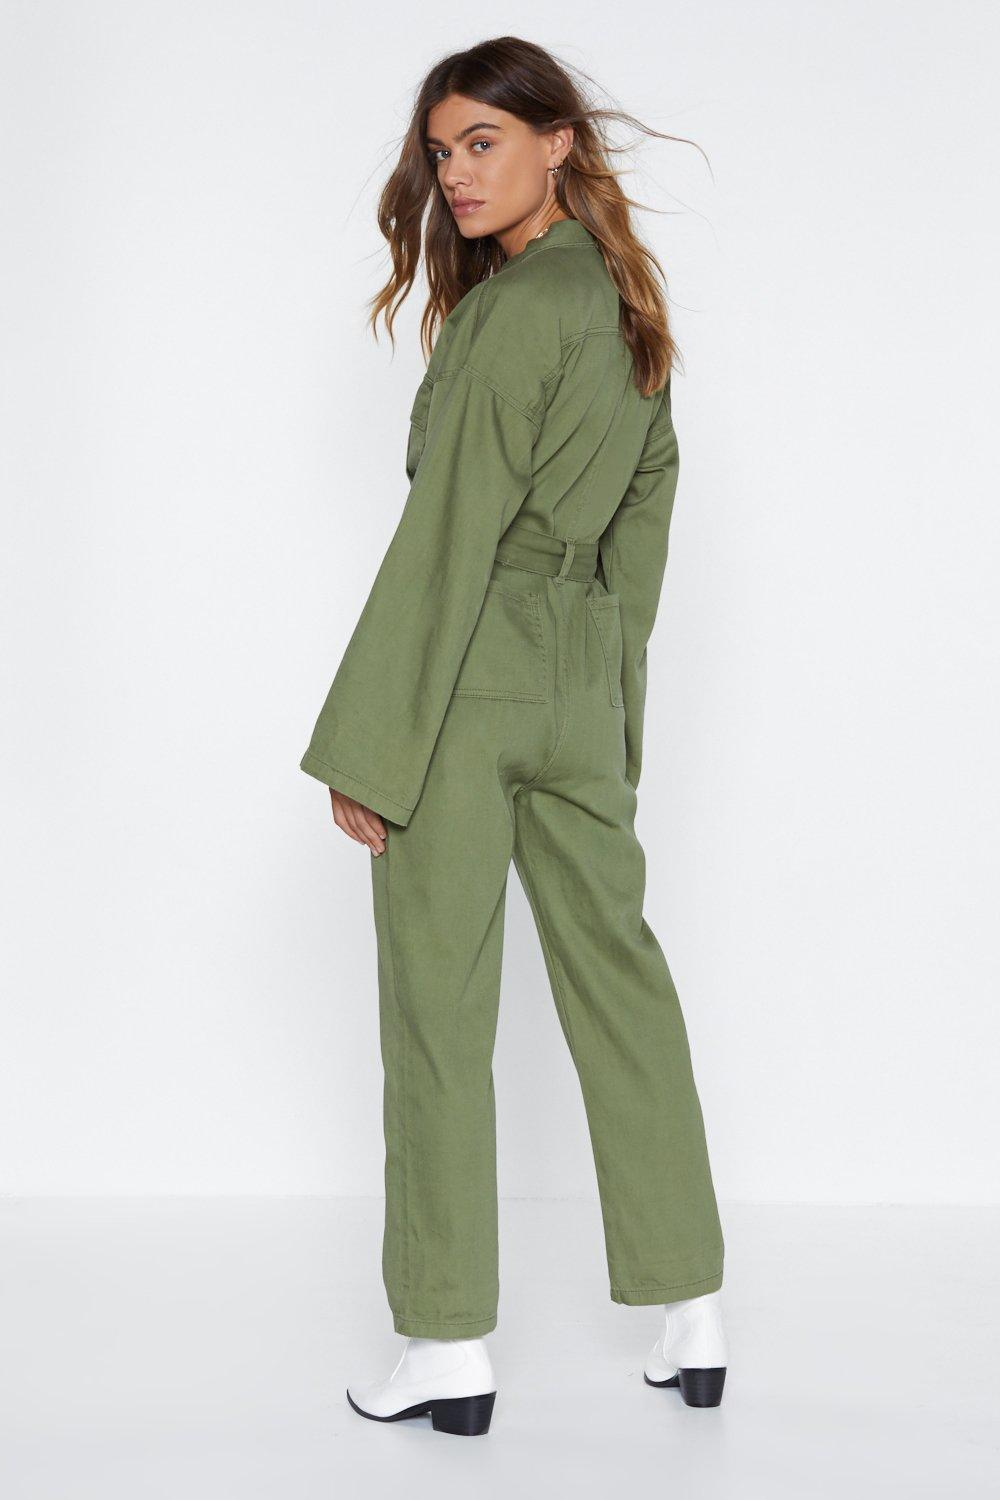 8cbe895ec41 Womens Khaki Girl Utility Fine Belted Boilersuit. Hover to zoom